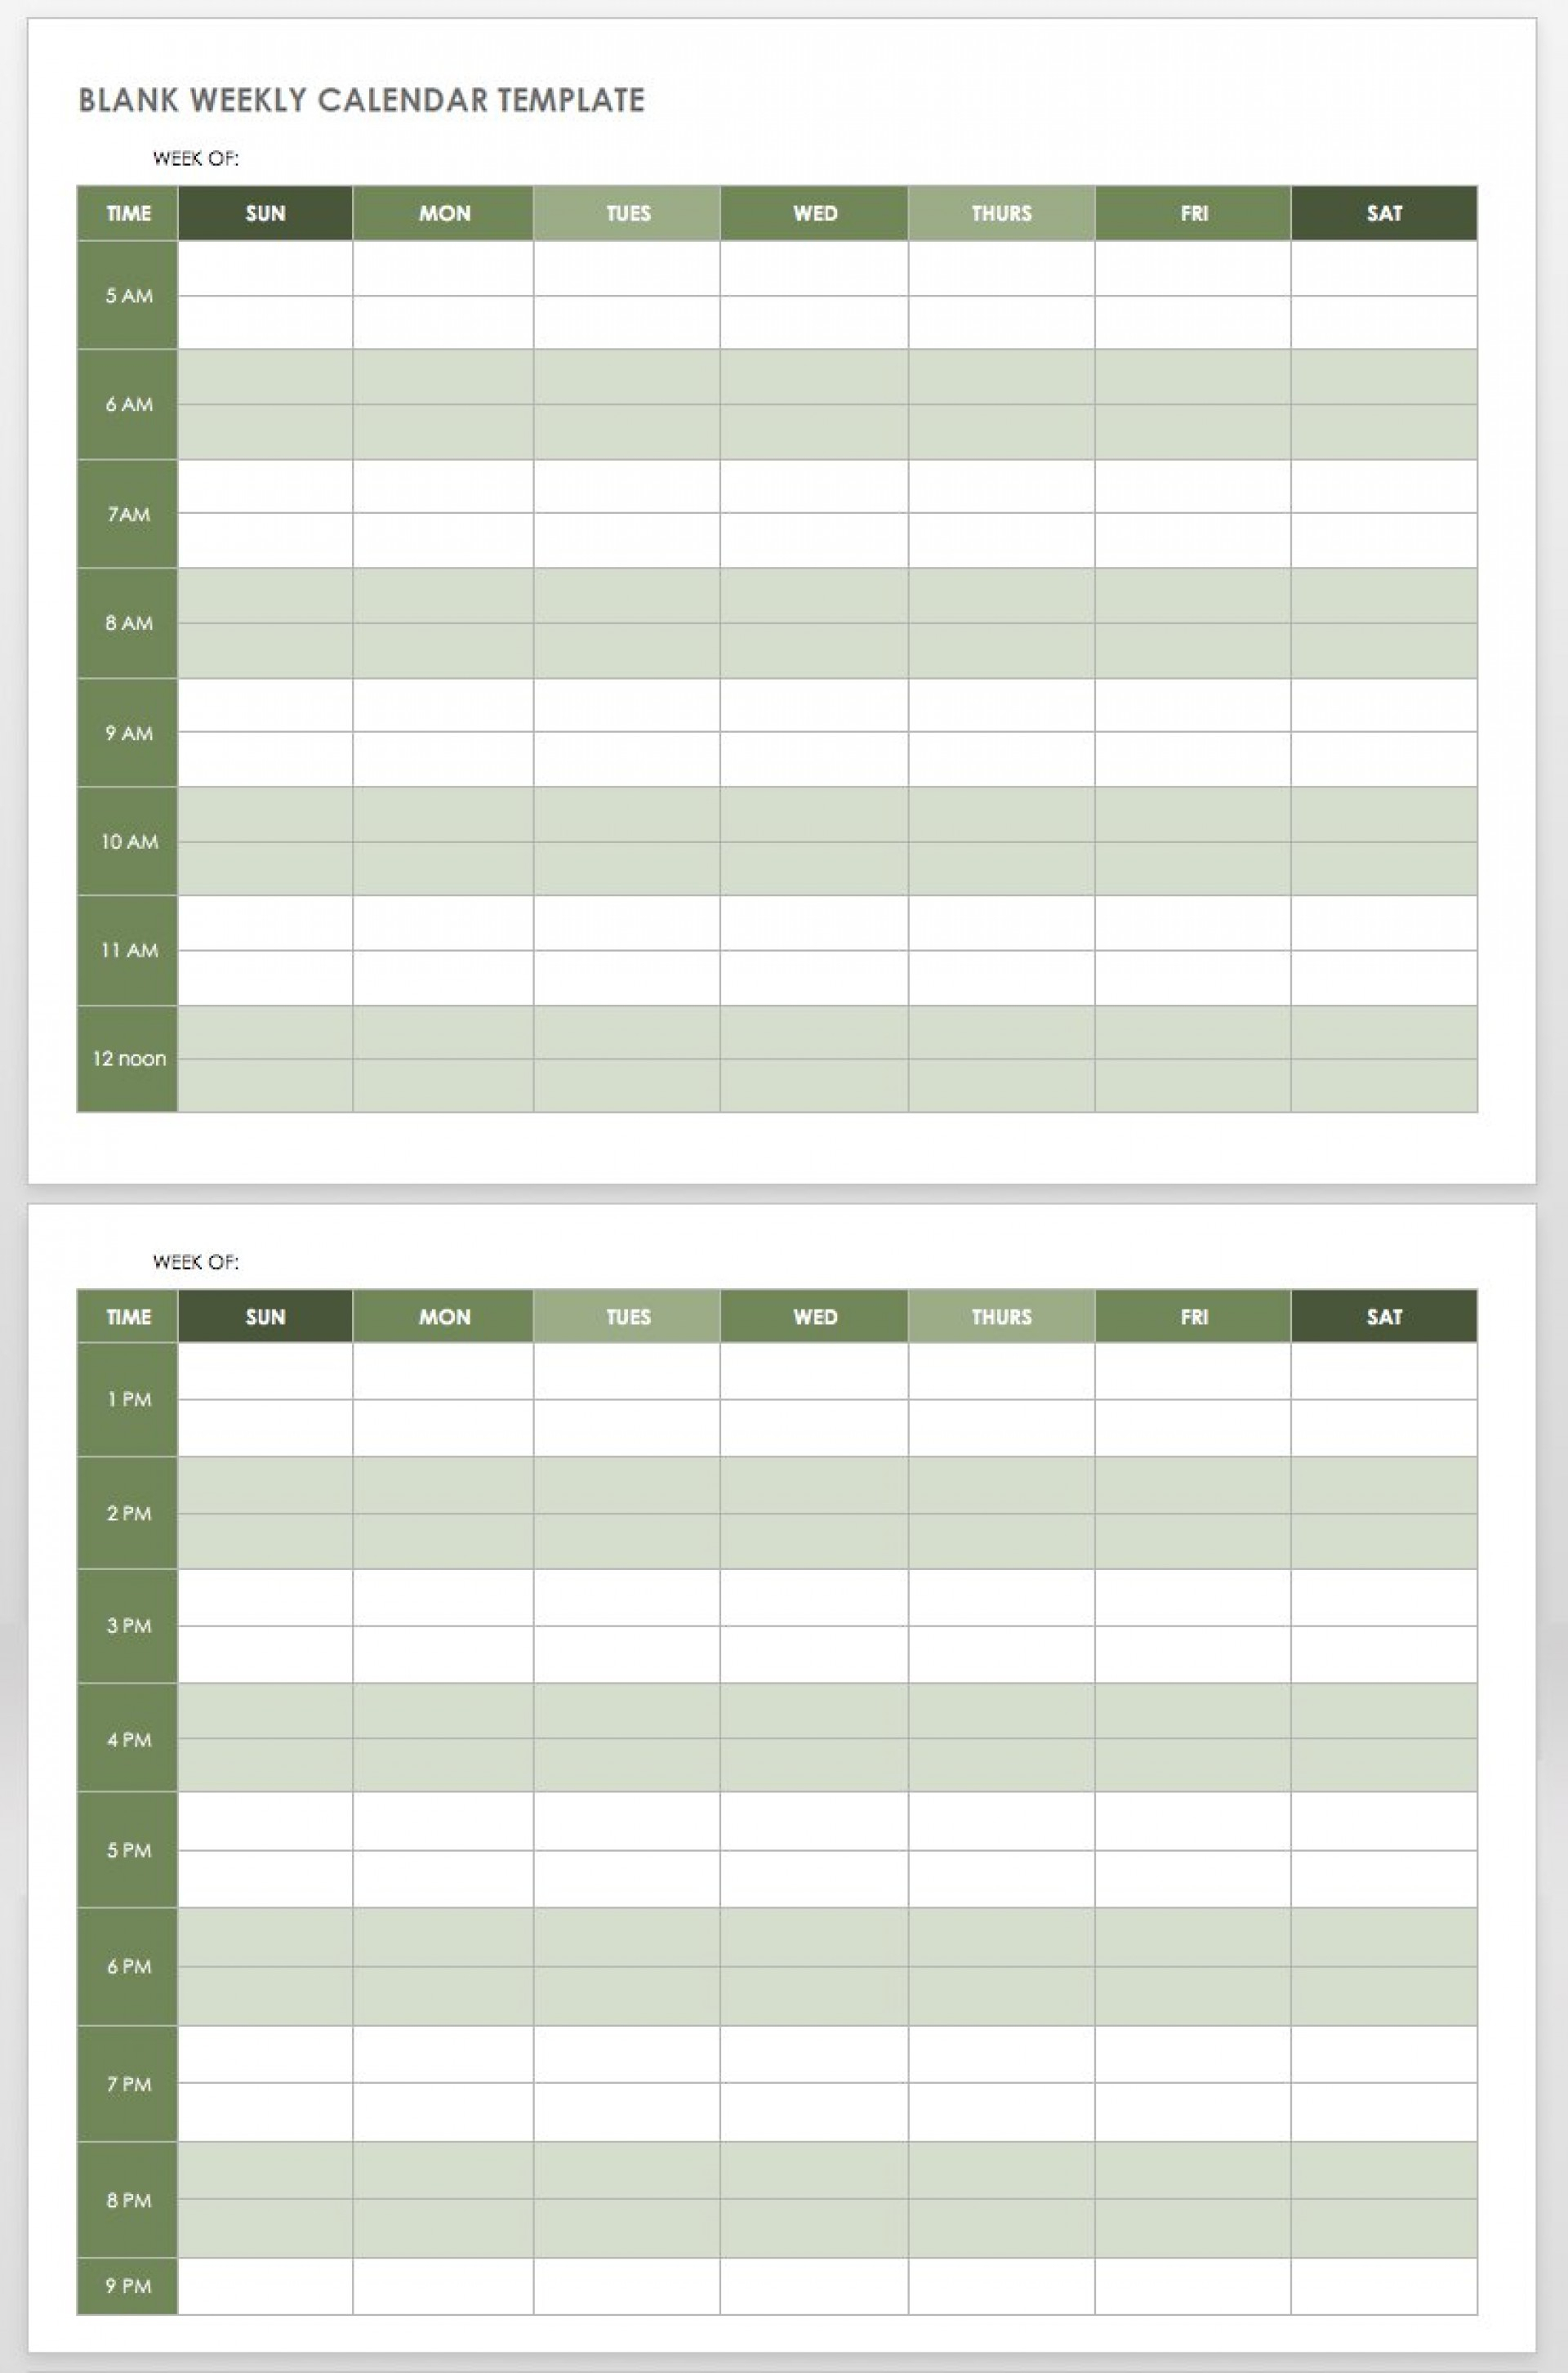 019 Template Ideas Free Printable Daily Calendar With Time in Blank Daily Calendar With Time Slots